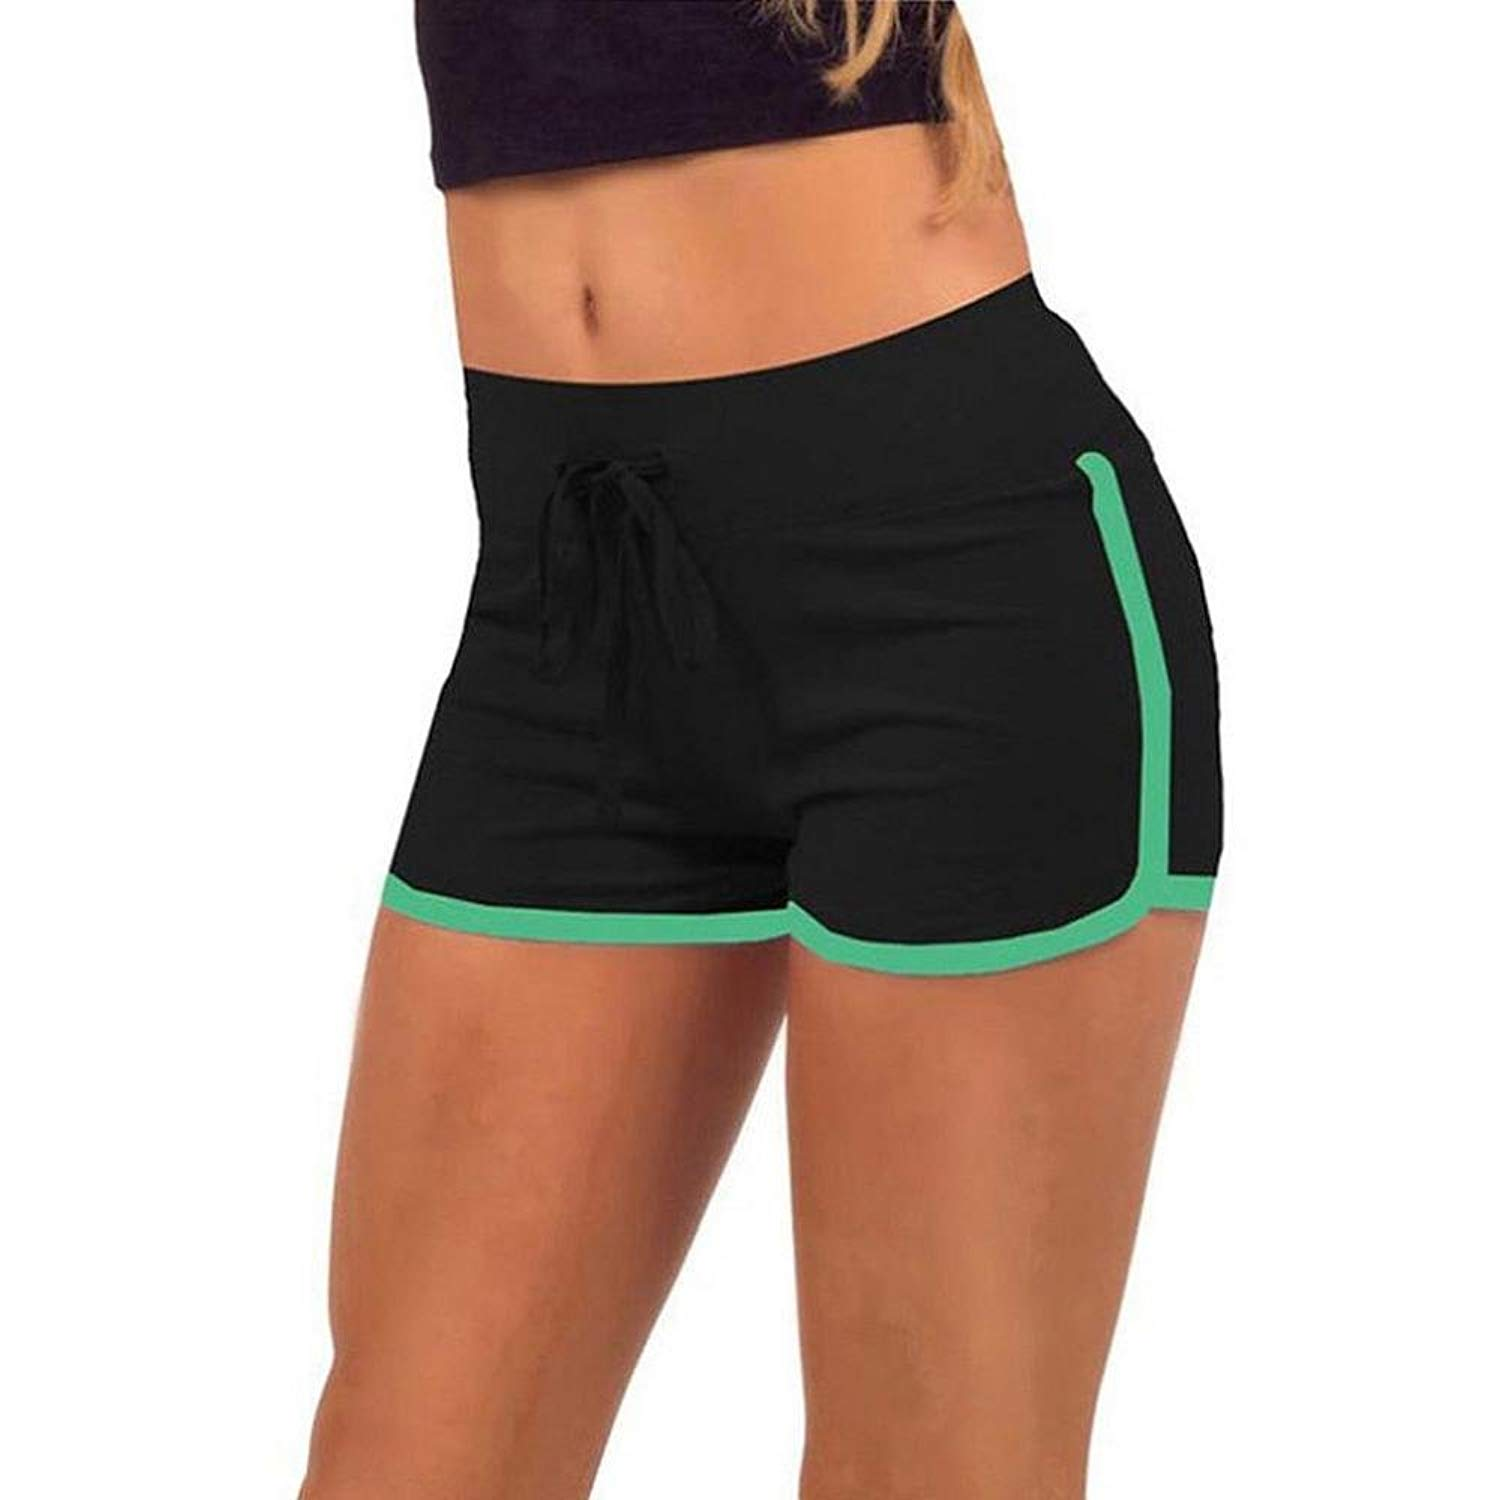 d15a3dd651 Get Quotations · Womens Shorts Pants,FTXJ Summer Sports Gym Workout  Waistband Skinny Yoga Shorts